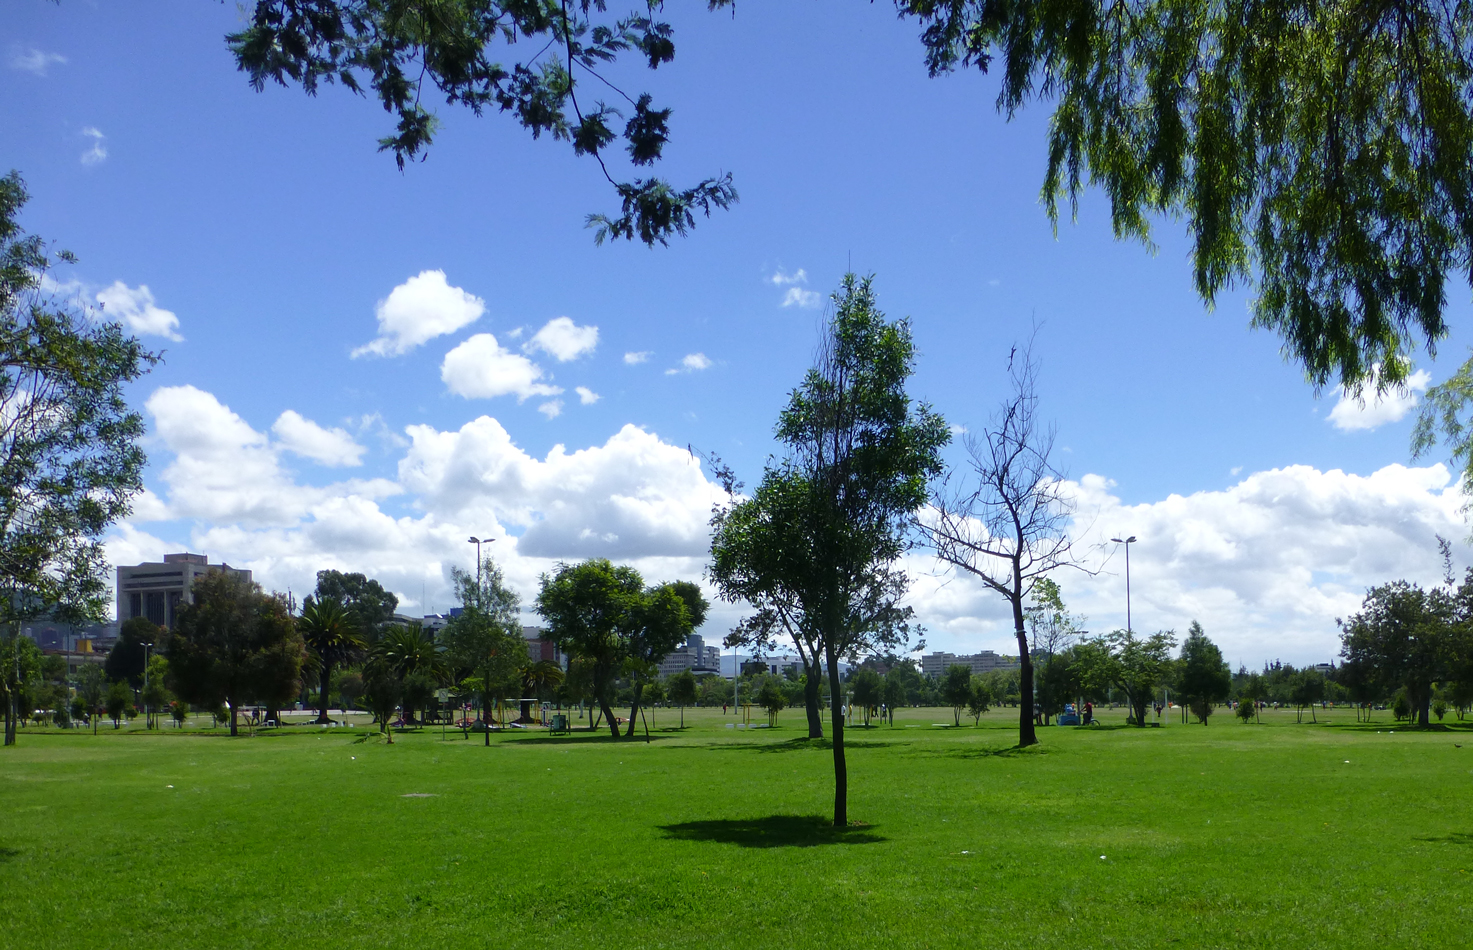 Another view of the Parque La Carolina